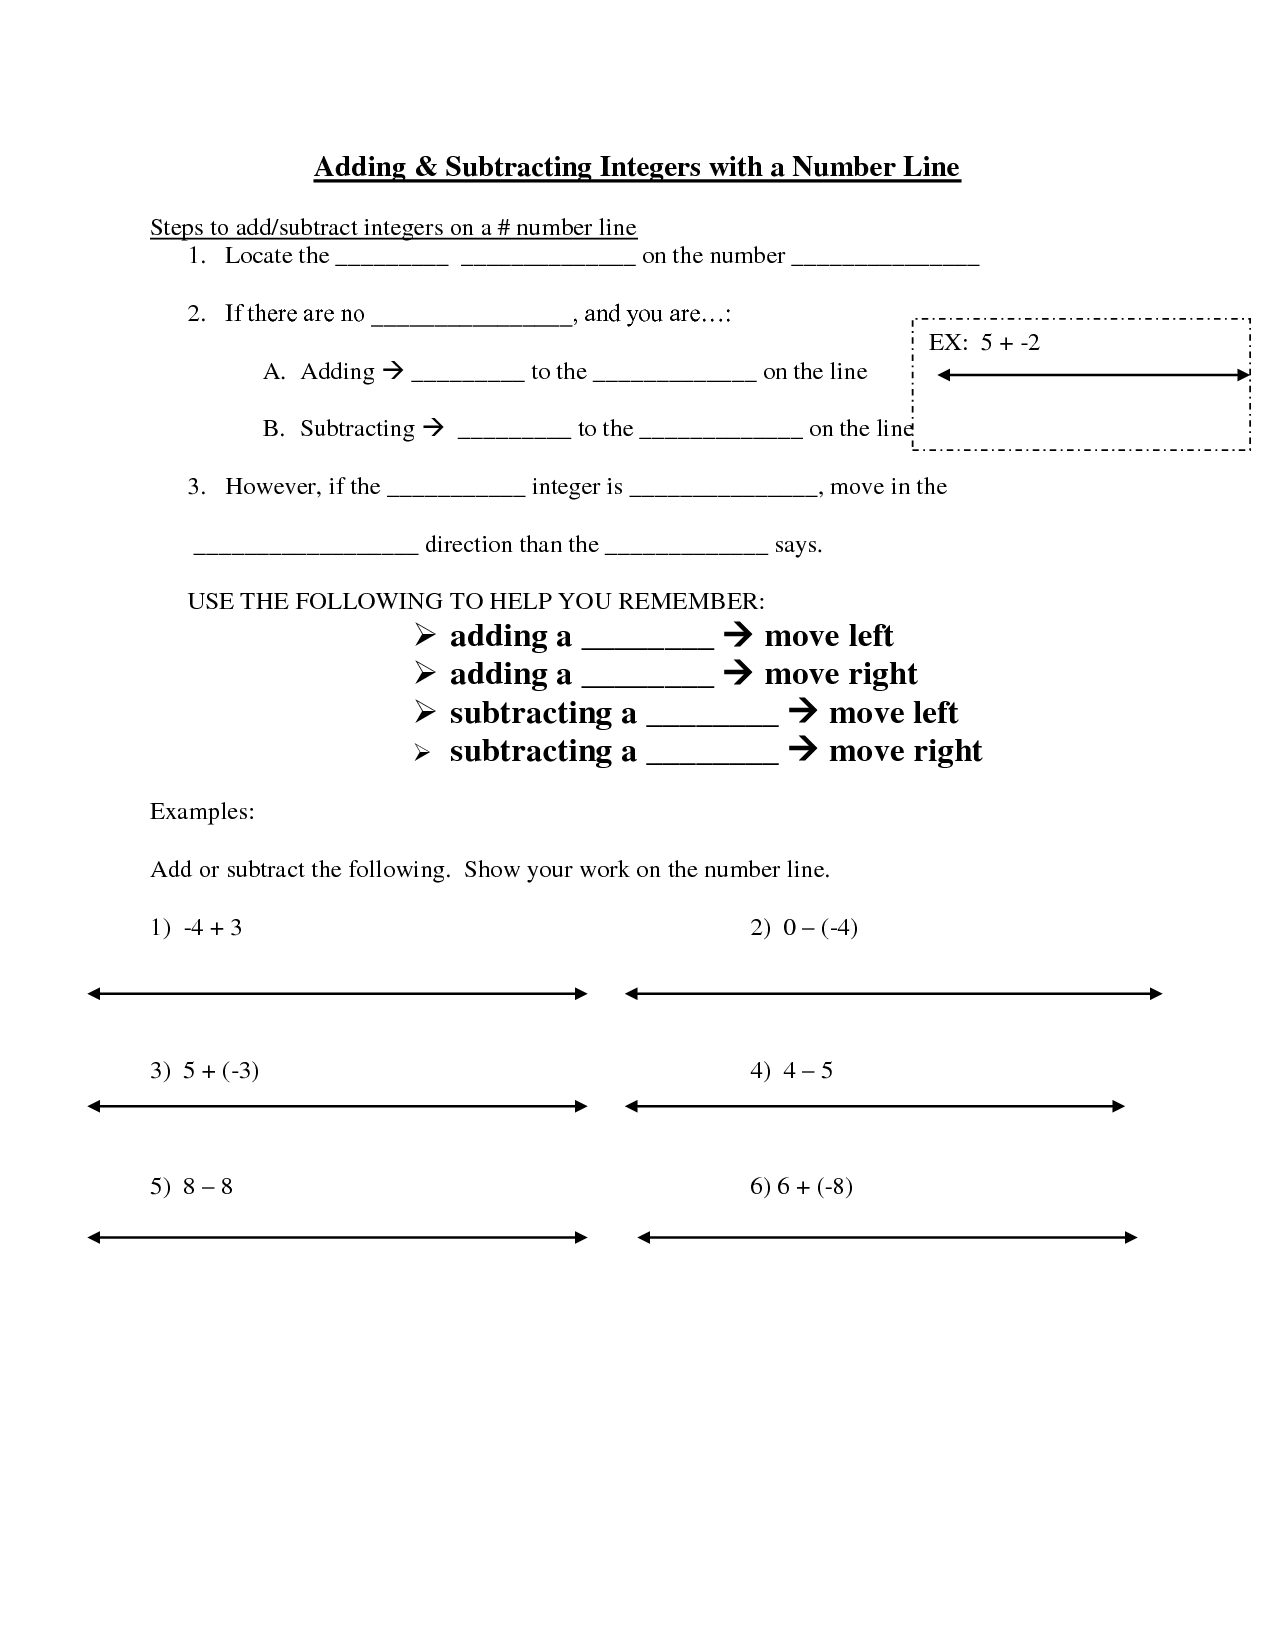 12 Best Images Of Images Adding Numbers Worksheet